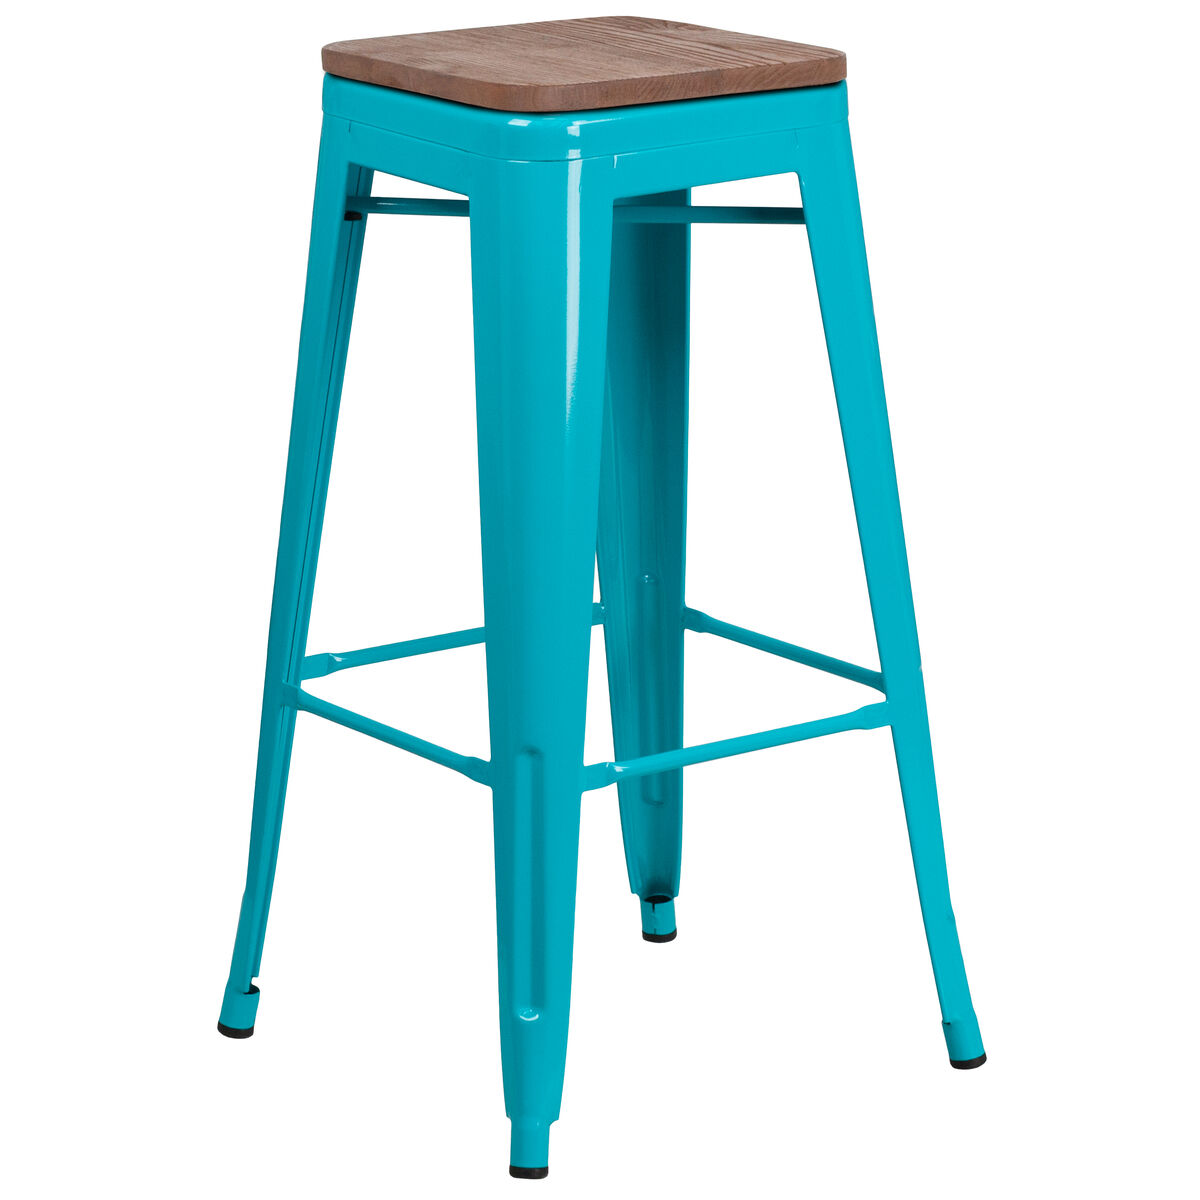 Pleasant 30 High Backless Crystal Teal Blue Barstool With Square Wood Seat Uwap Interior Chair Design Uwaporg